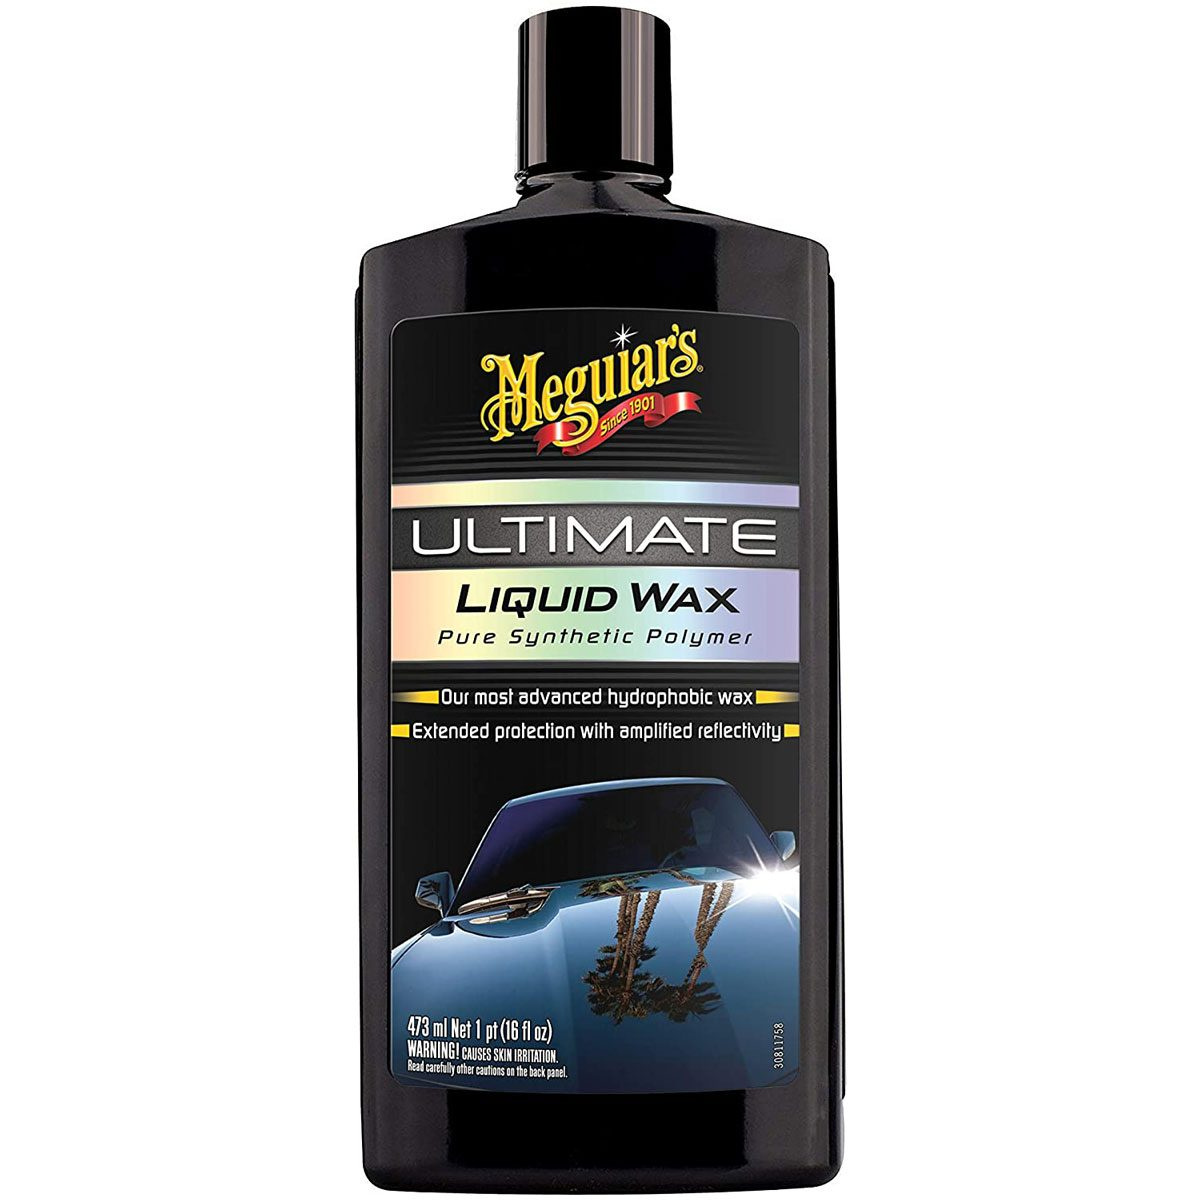 Liquid car wax